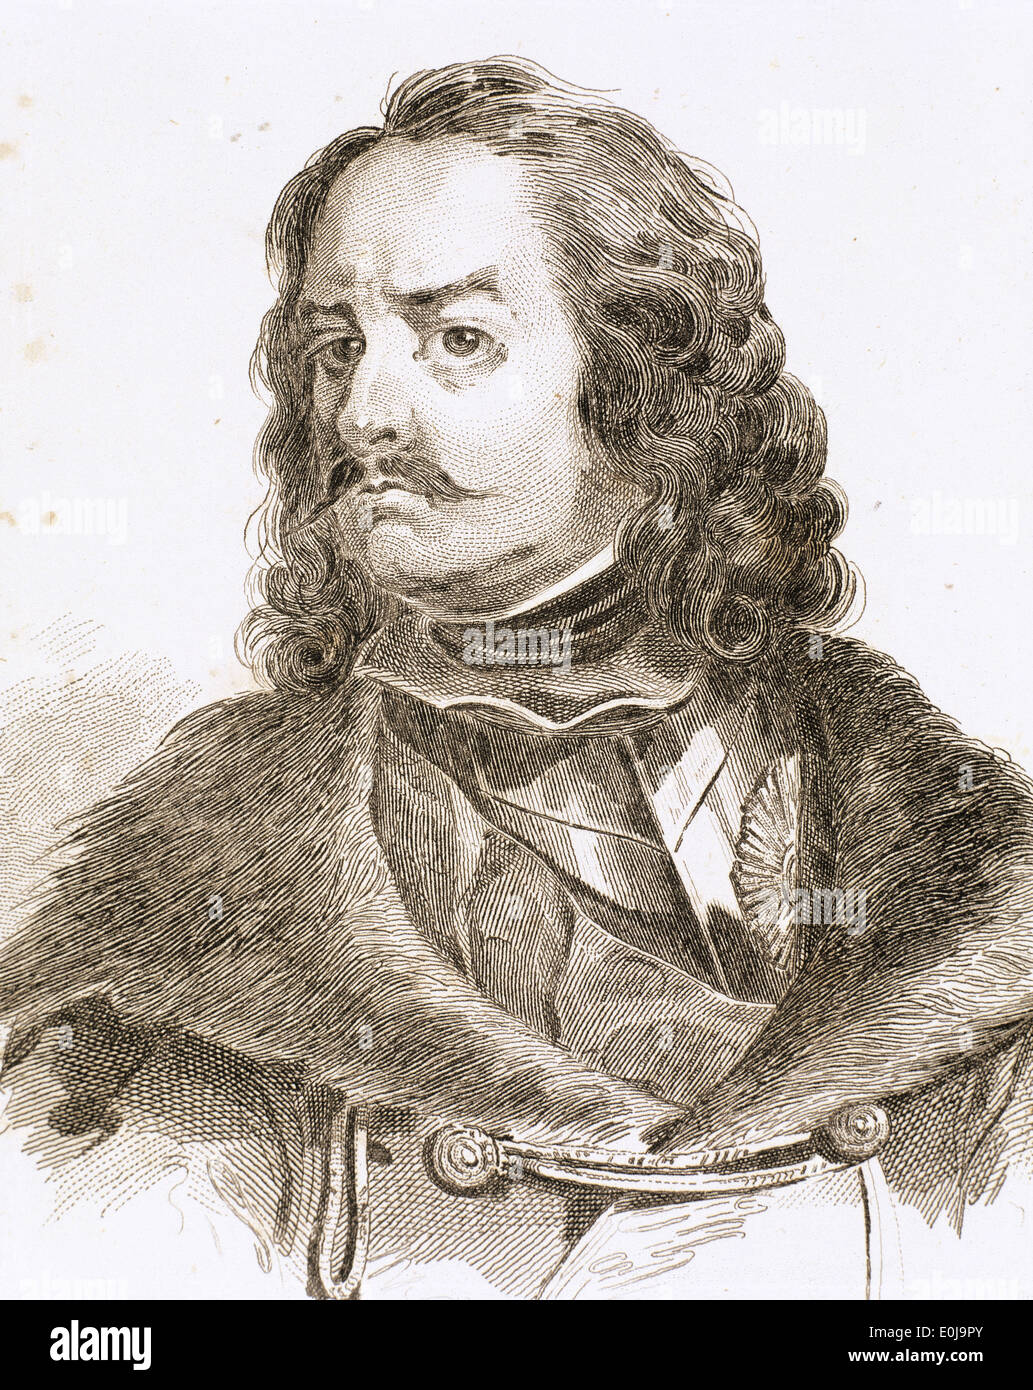 Peter the Great (1672-1725). Emperor of All Russia. House of Romanov. Engraving, 19th century. - Stock Image